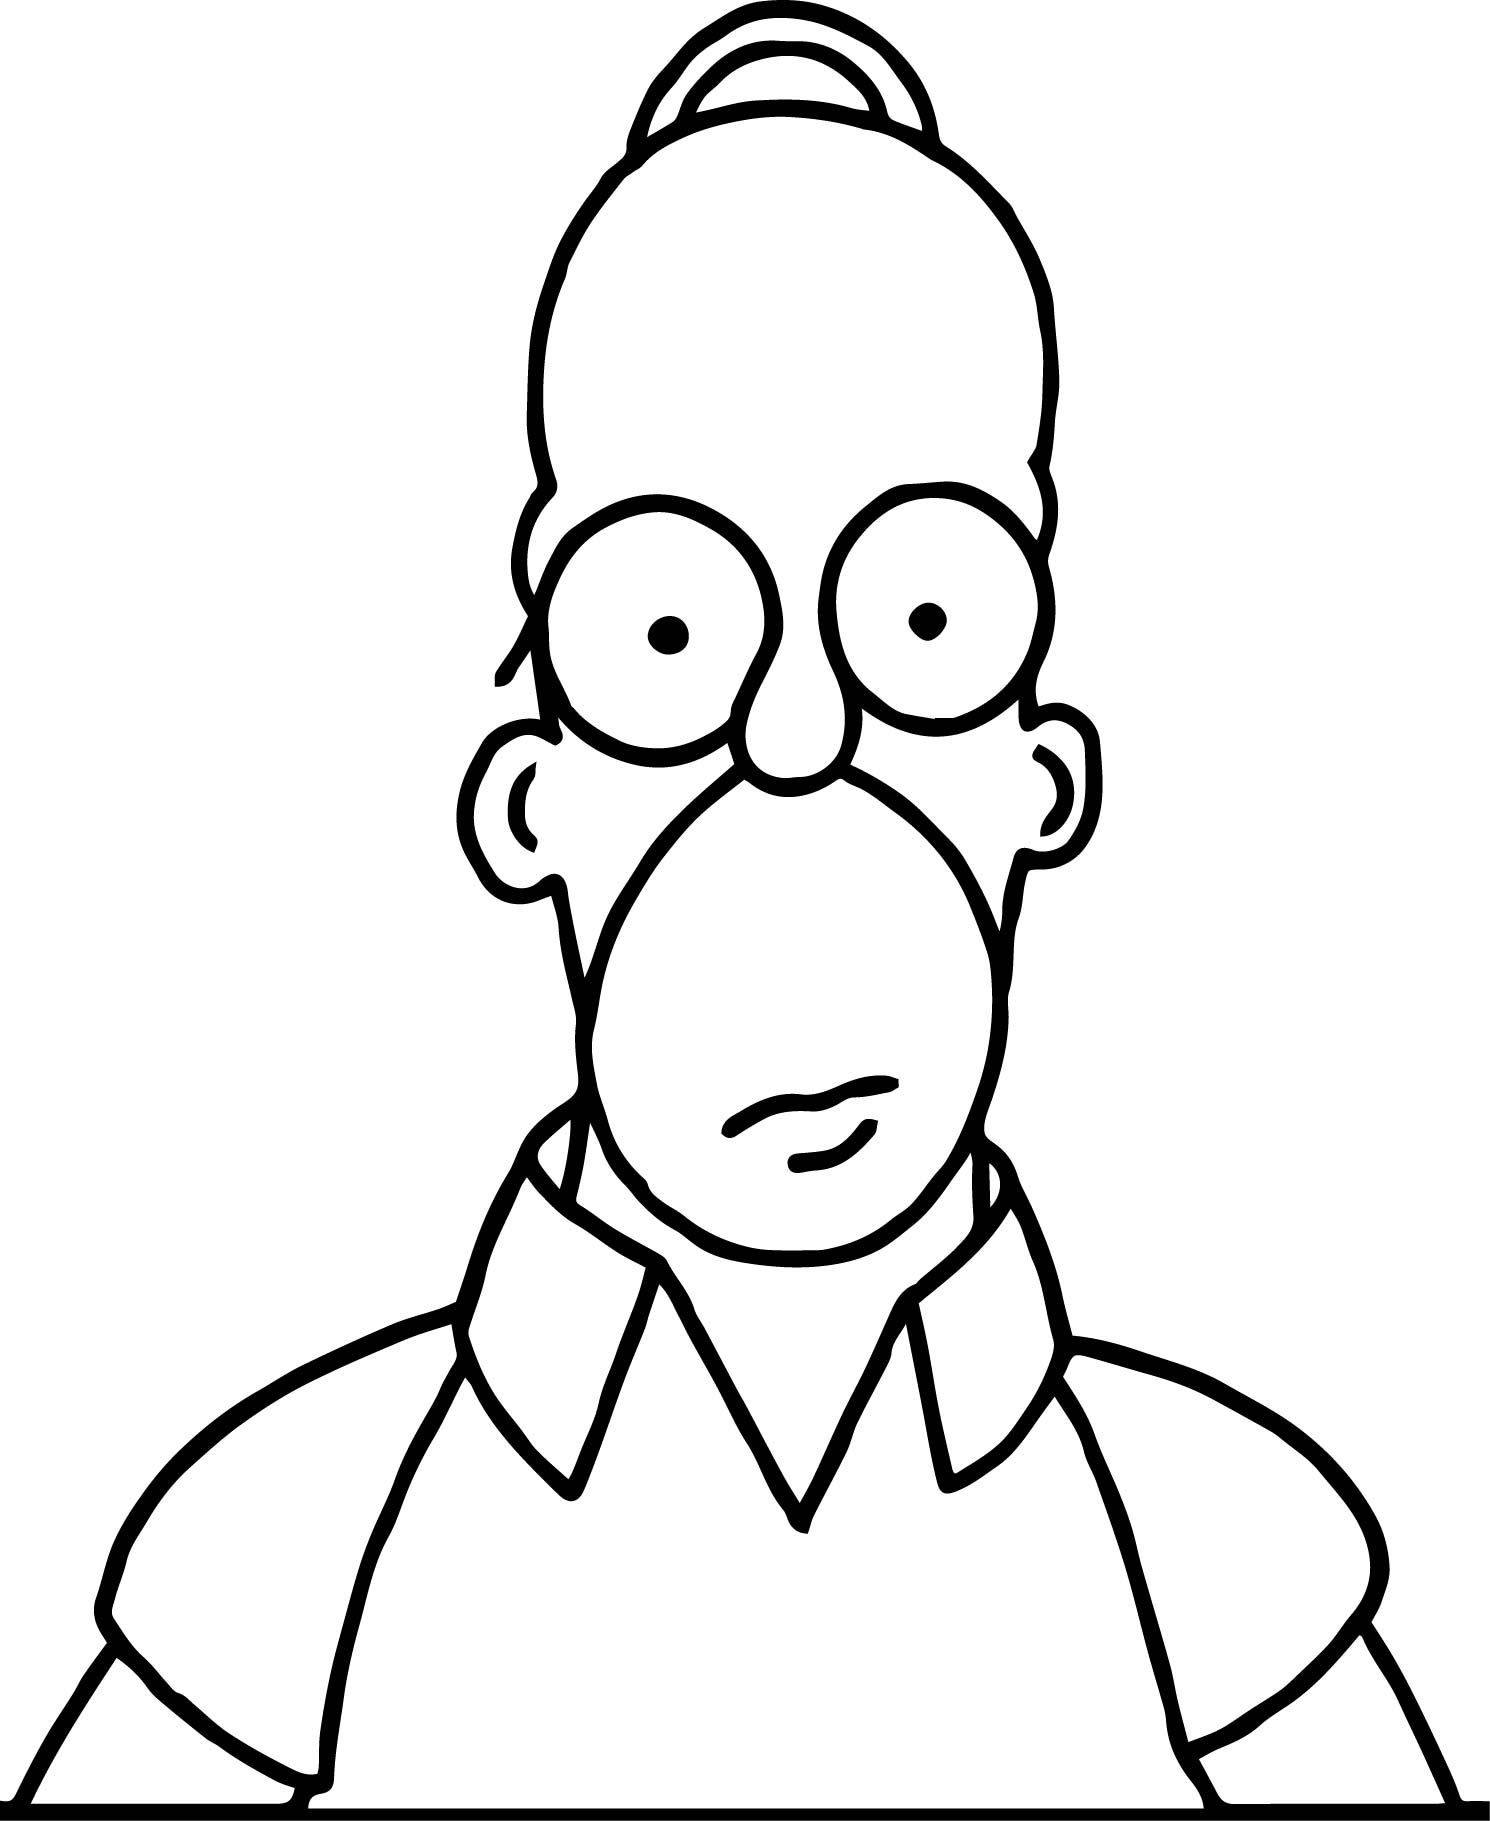 1490x1821 Homer The Simpsons Coloring Pages Wecoloringpage